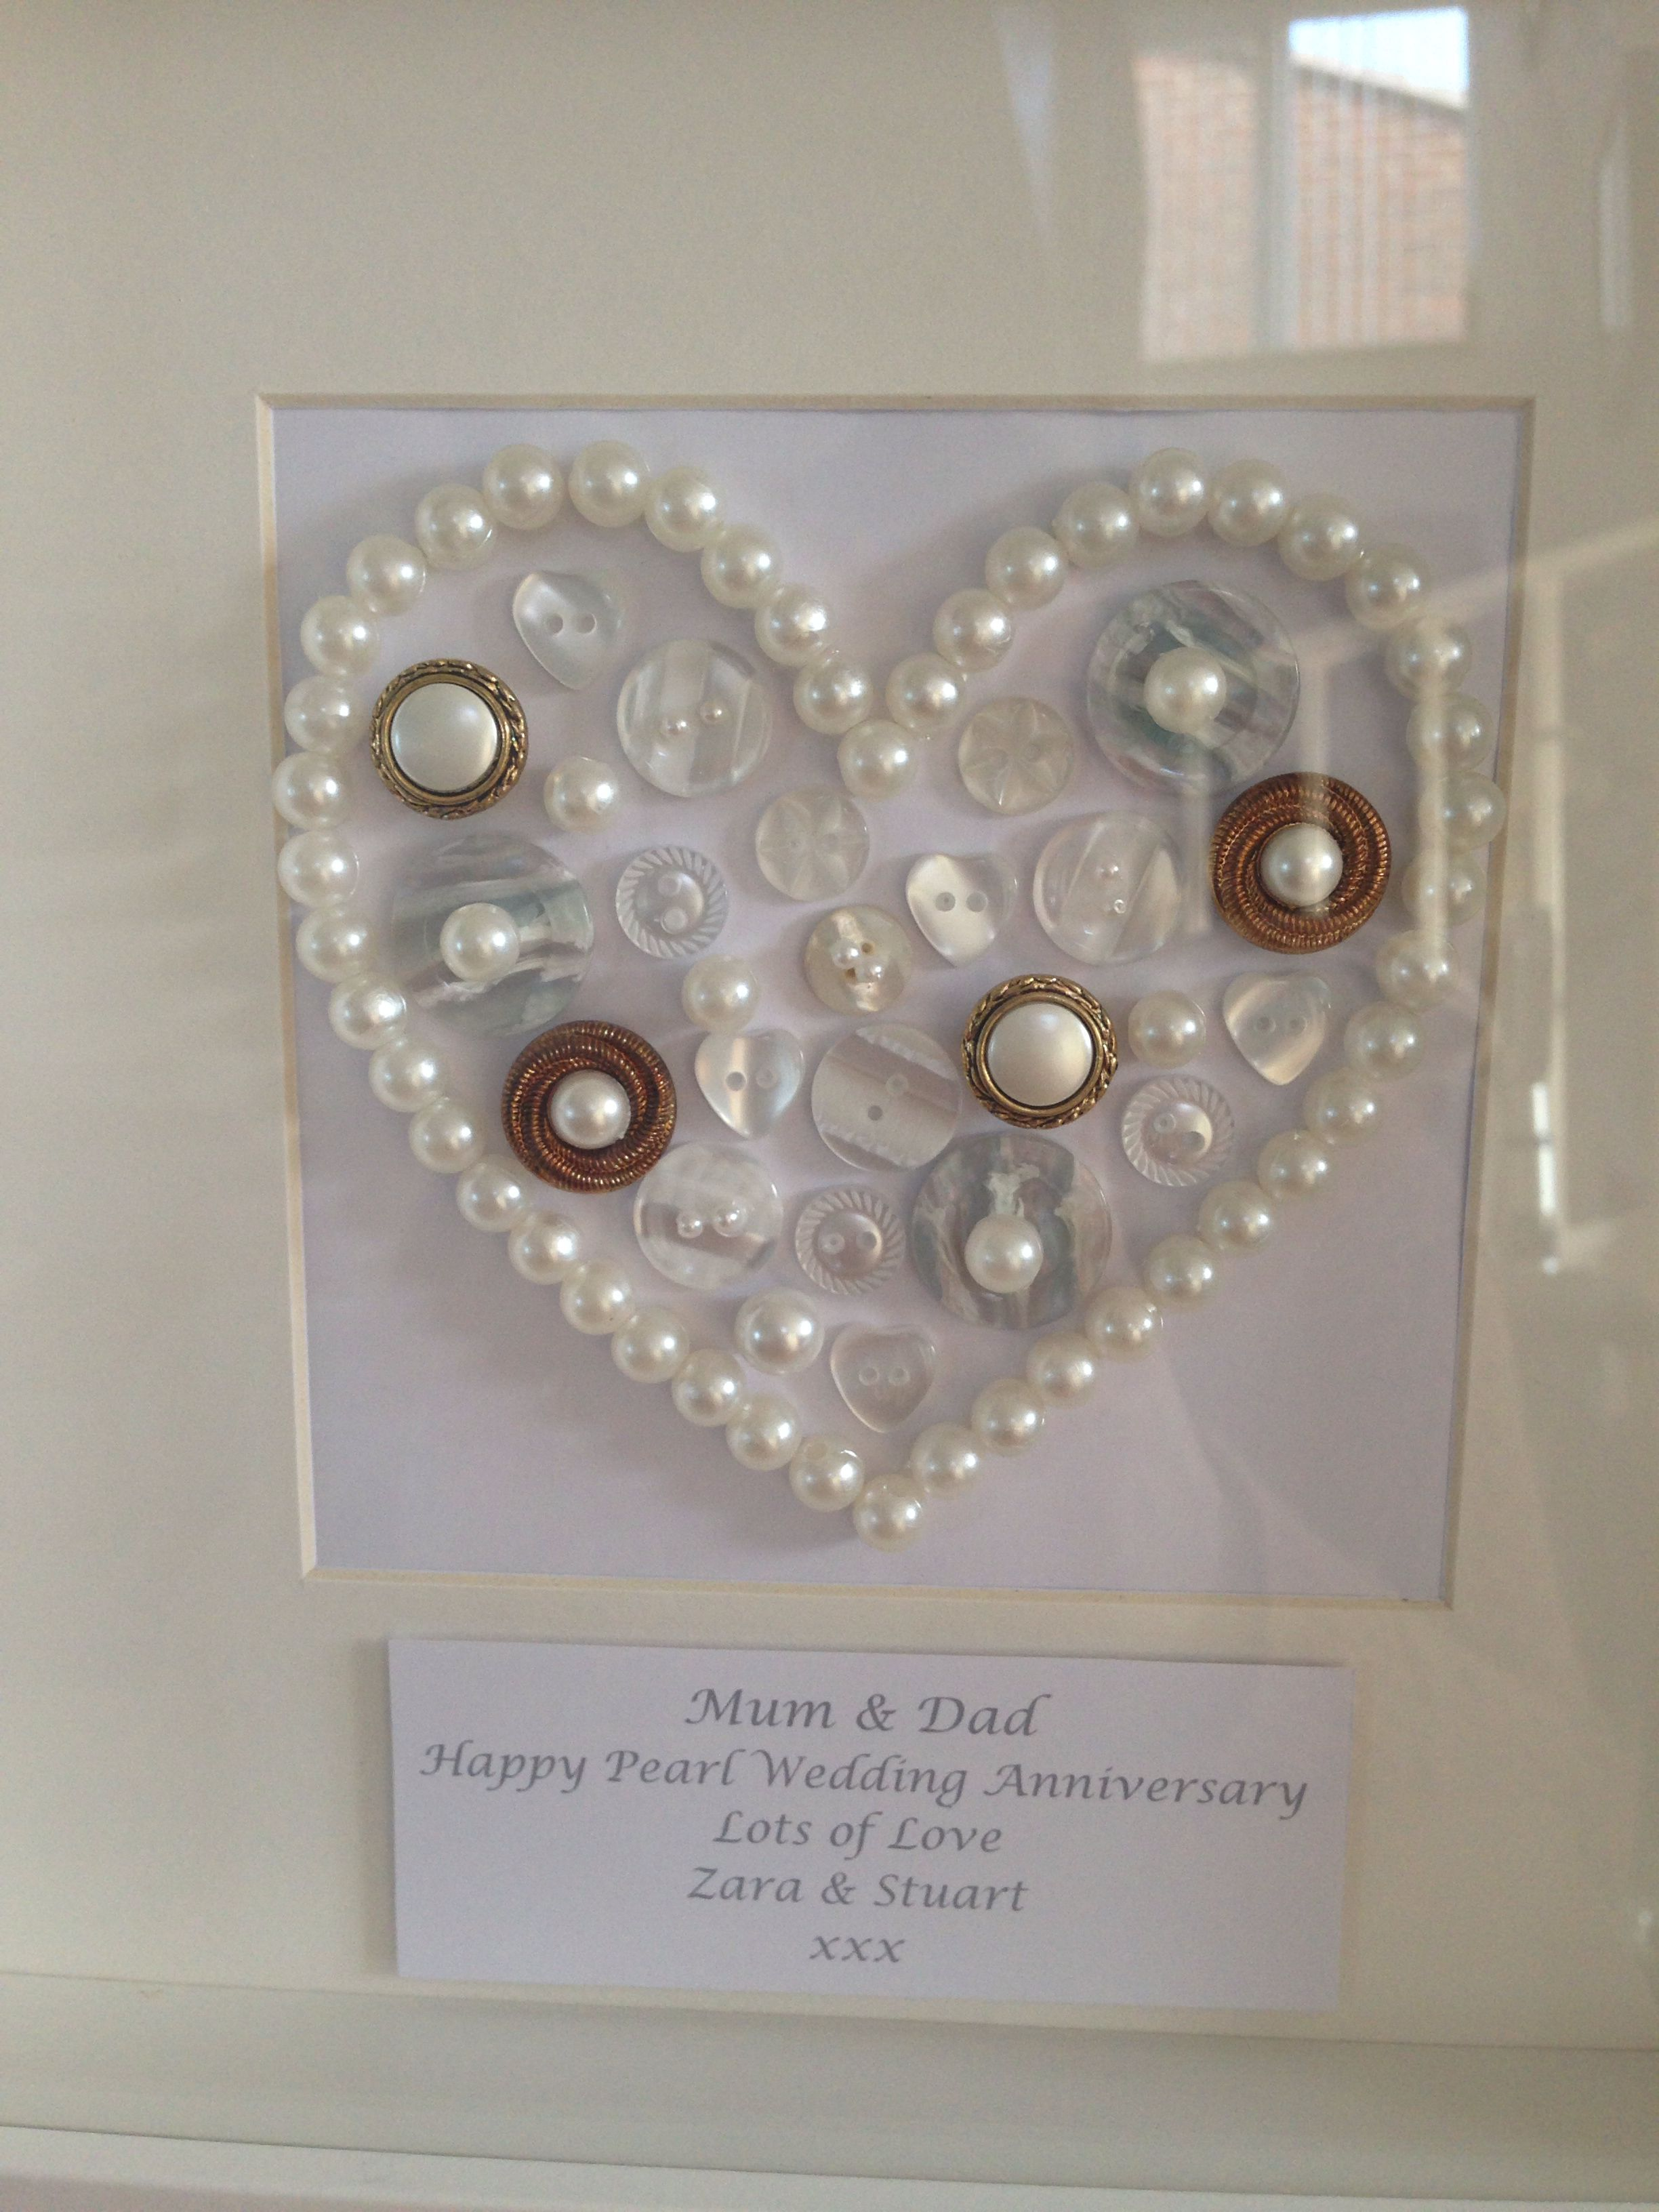 Ideas For Pearl Wedding Anniversary Gifts: Pearl Wedding Anniversary Handmade Gift